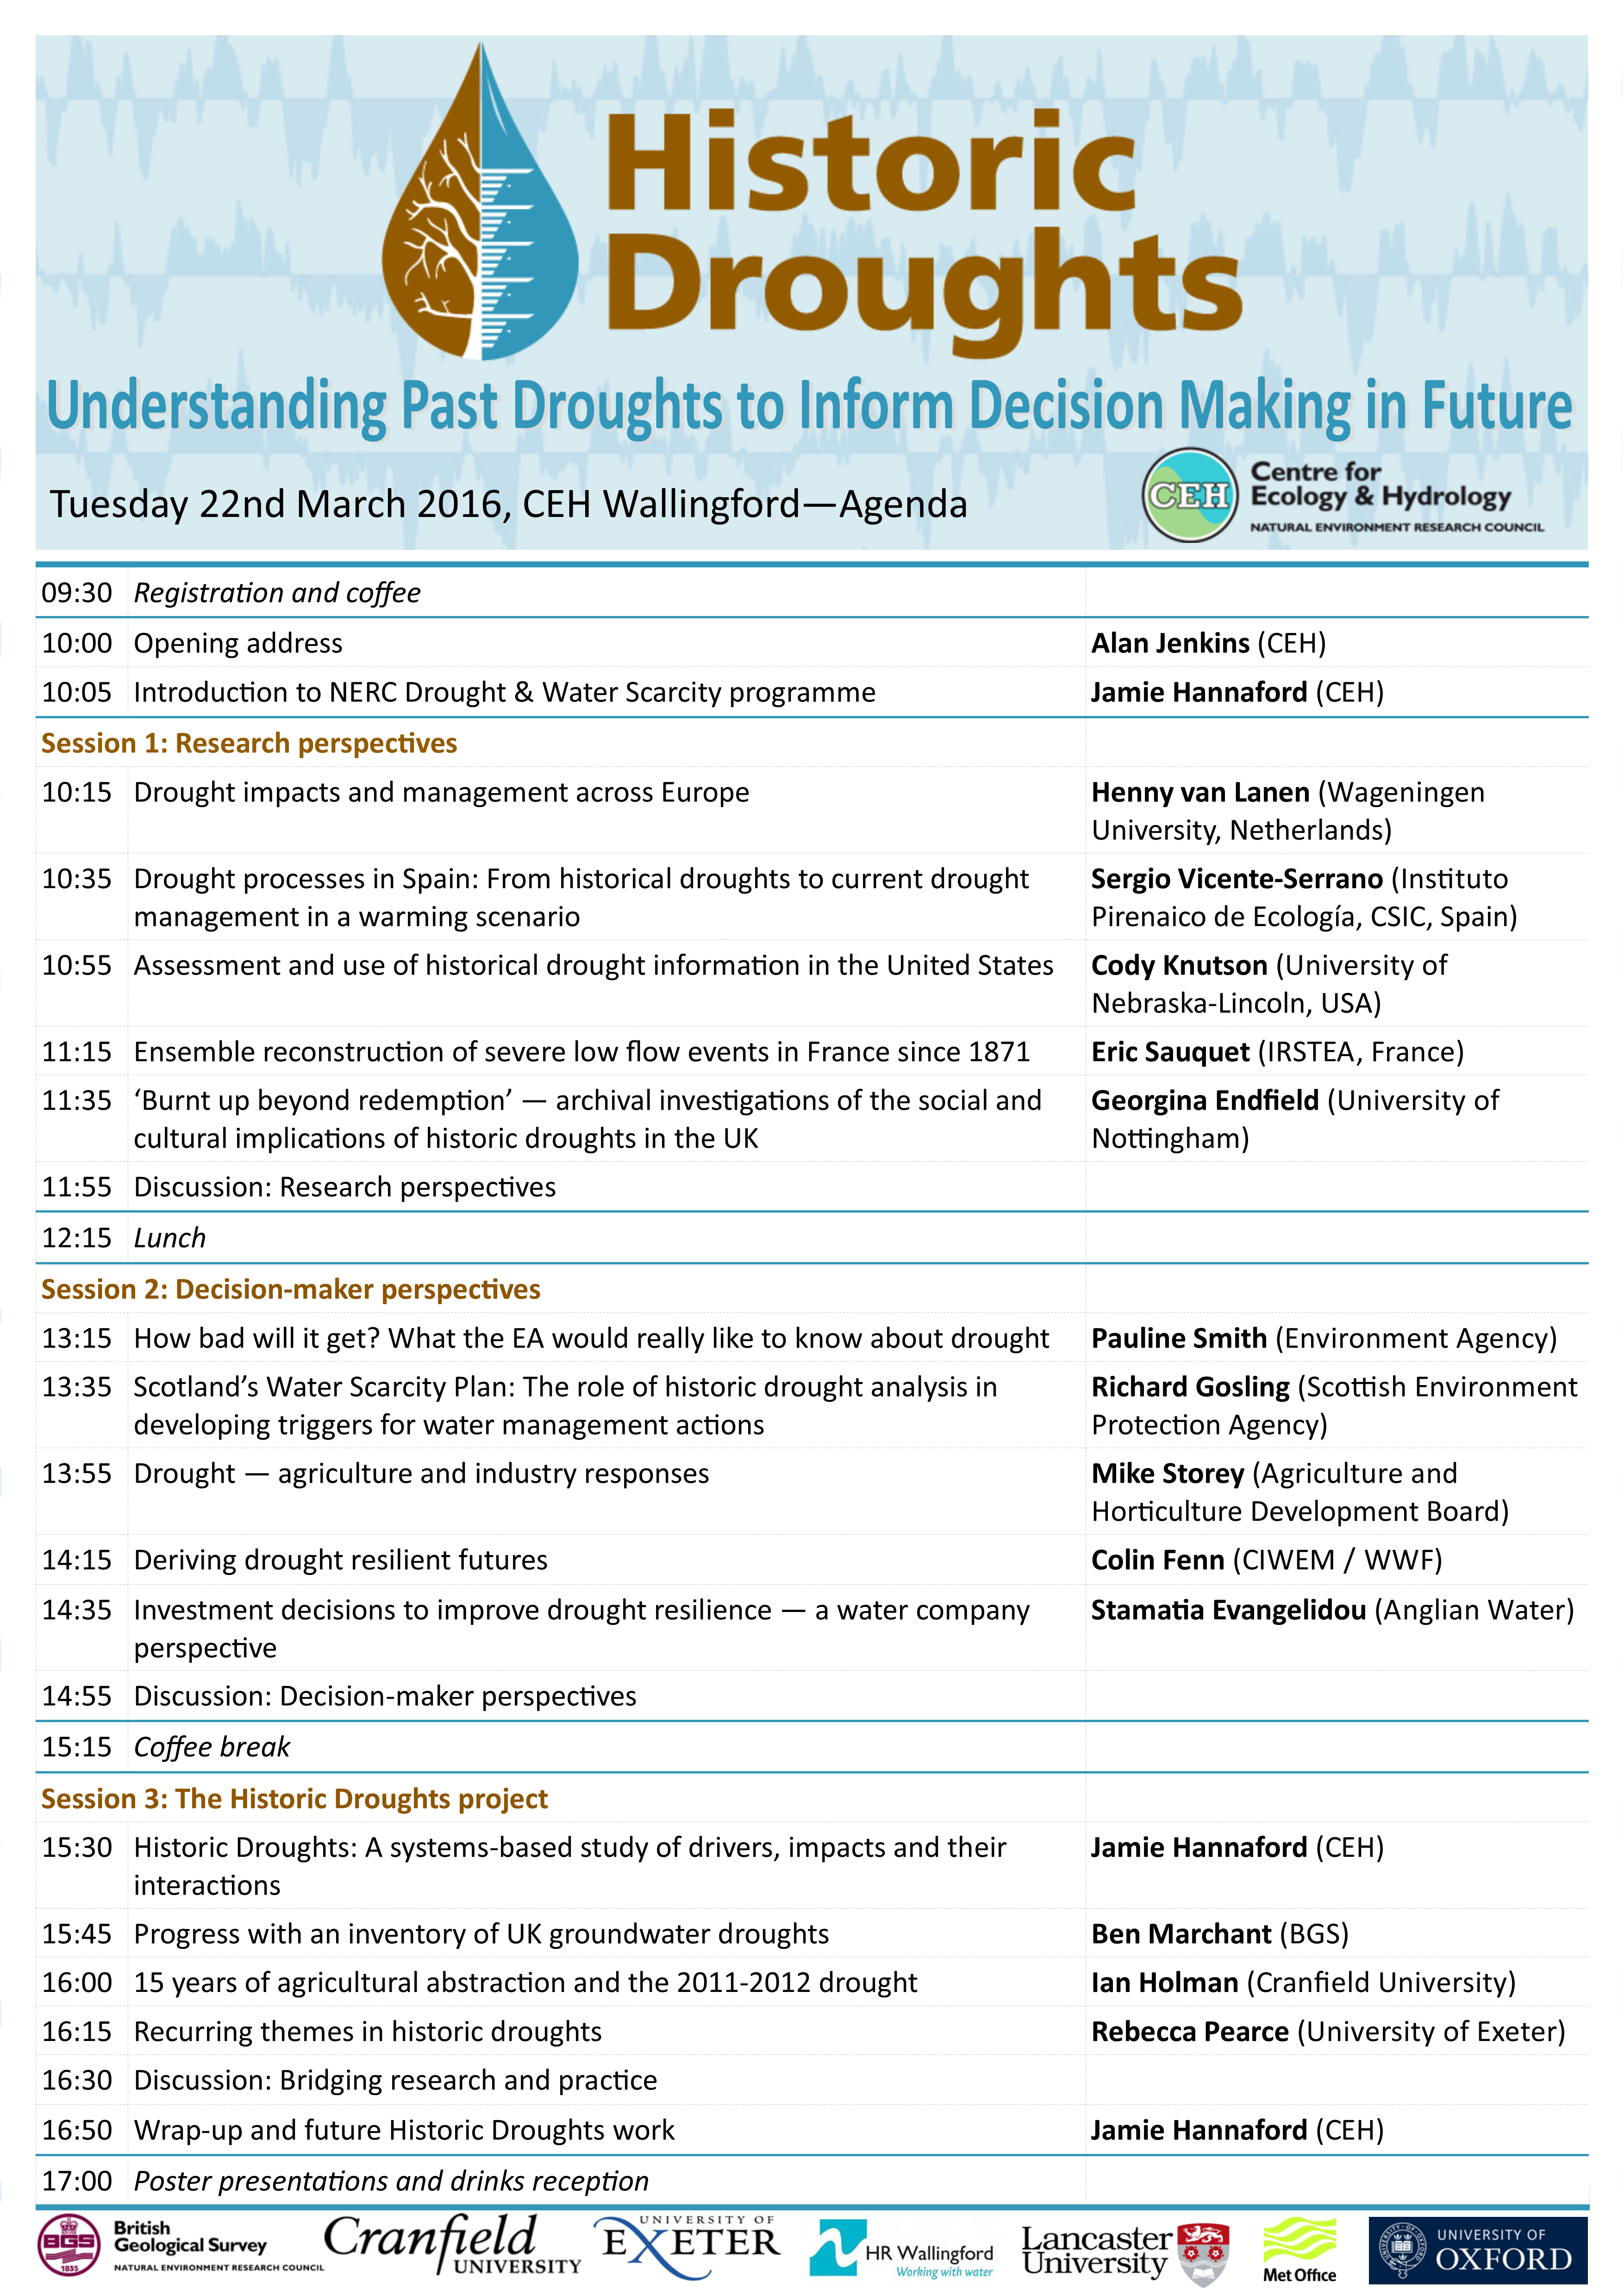 Historic Droughts Symposium Agenda